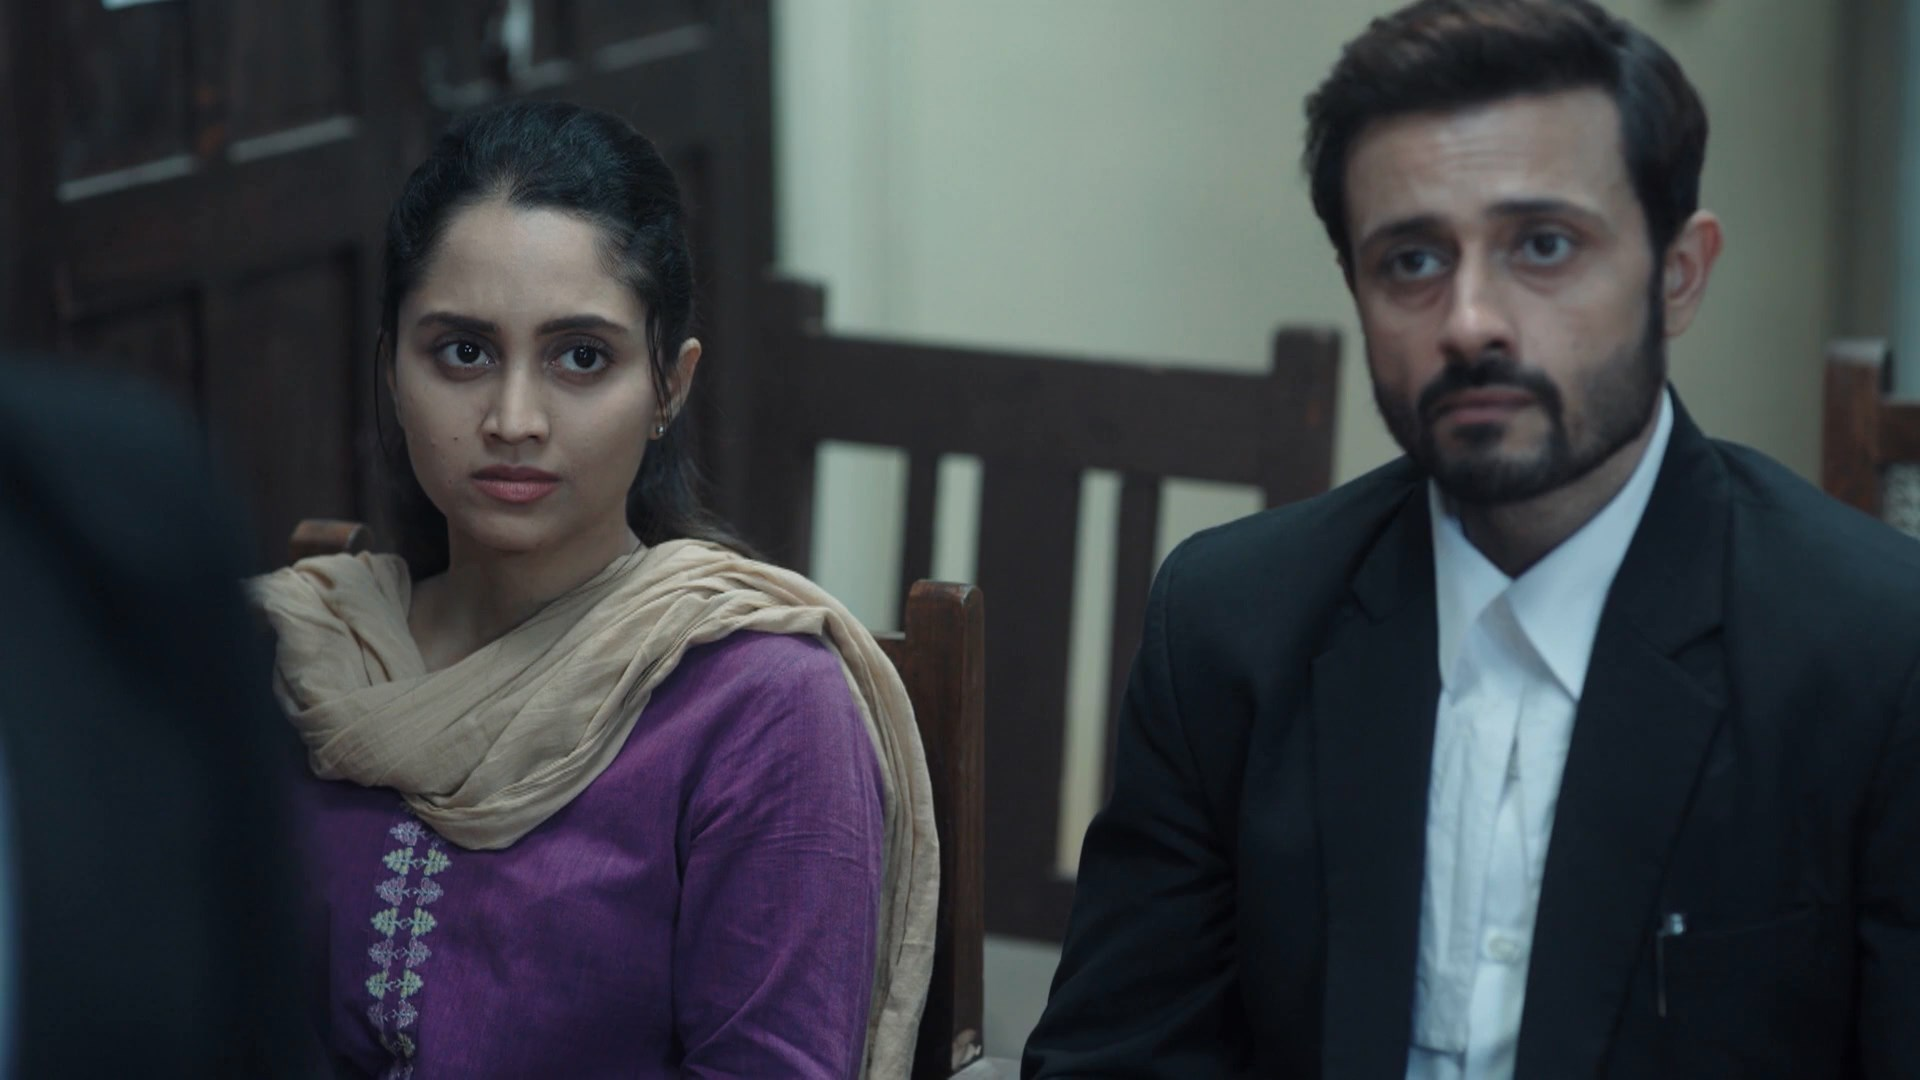 Illegal3782ac8 - Illegal 2020 Hindi S01 Voot Select Complete Web Series 480p HDRip 900MB x264 AAC